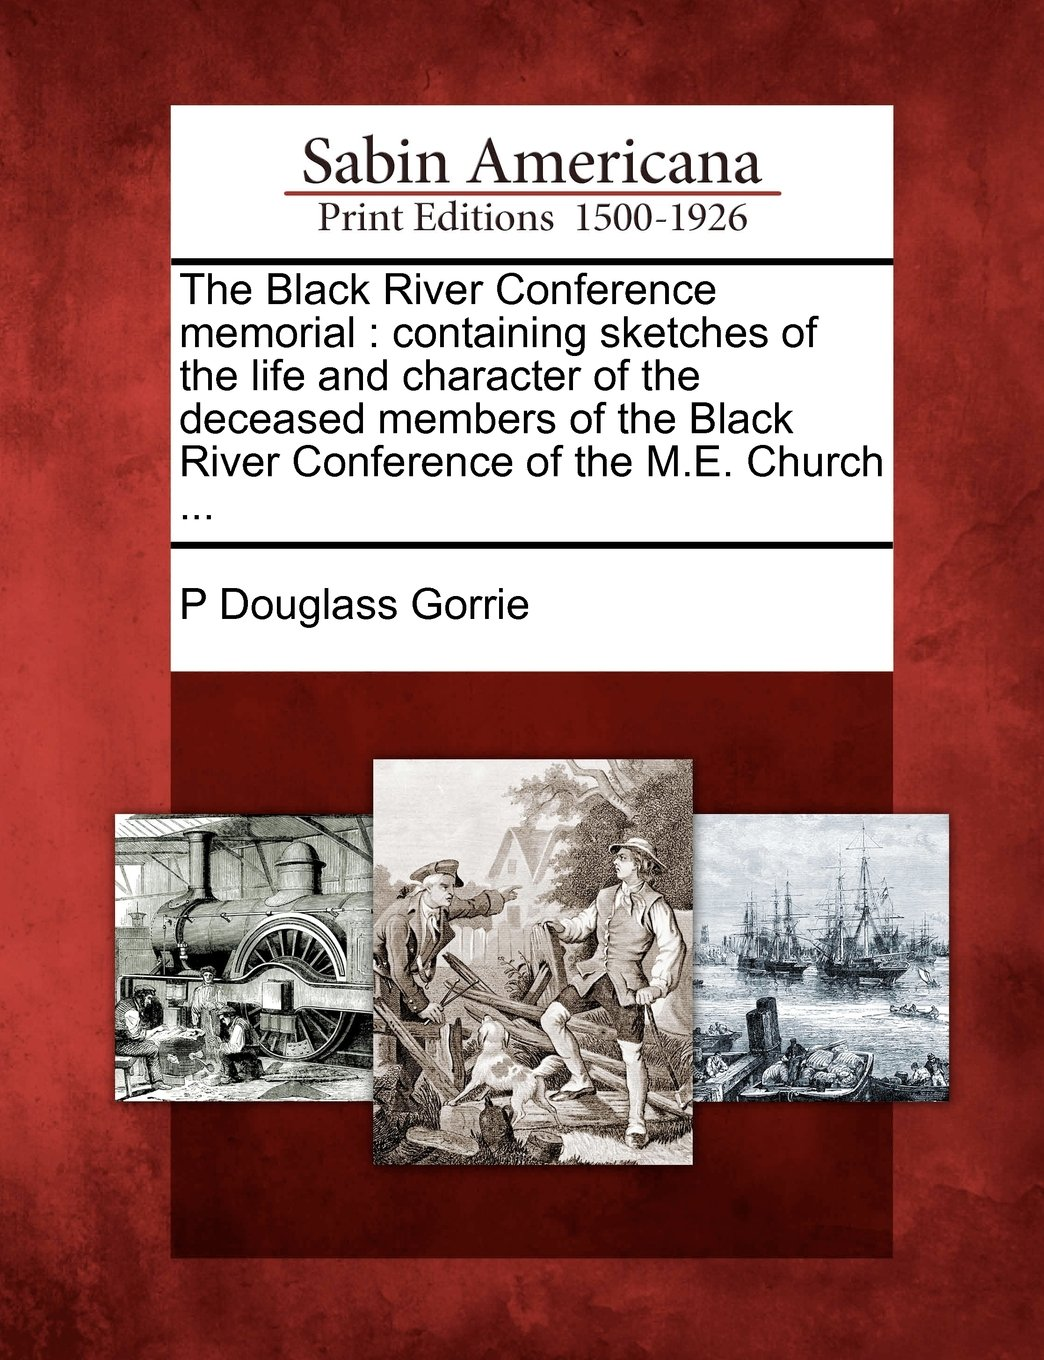 Read Online The Black River Conference memorial: containing sketches of the life and character of the deceased members of the Black River Conference of the M.E. Church ... PDF